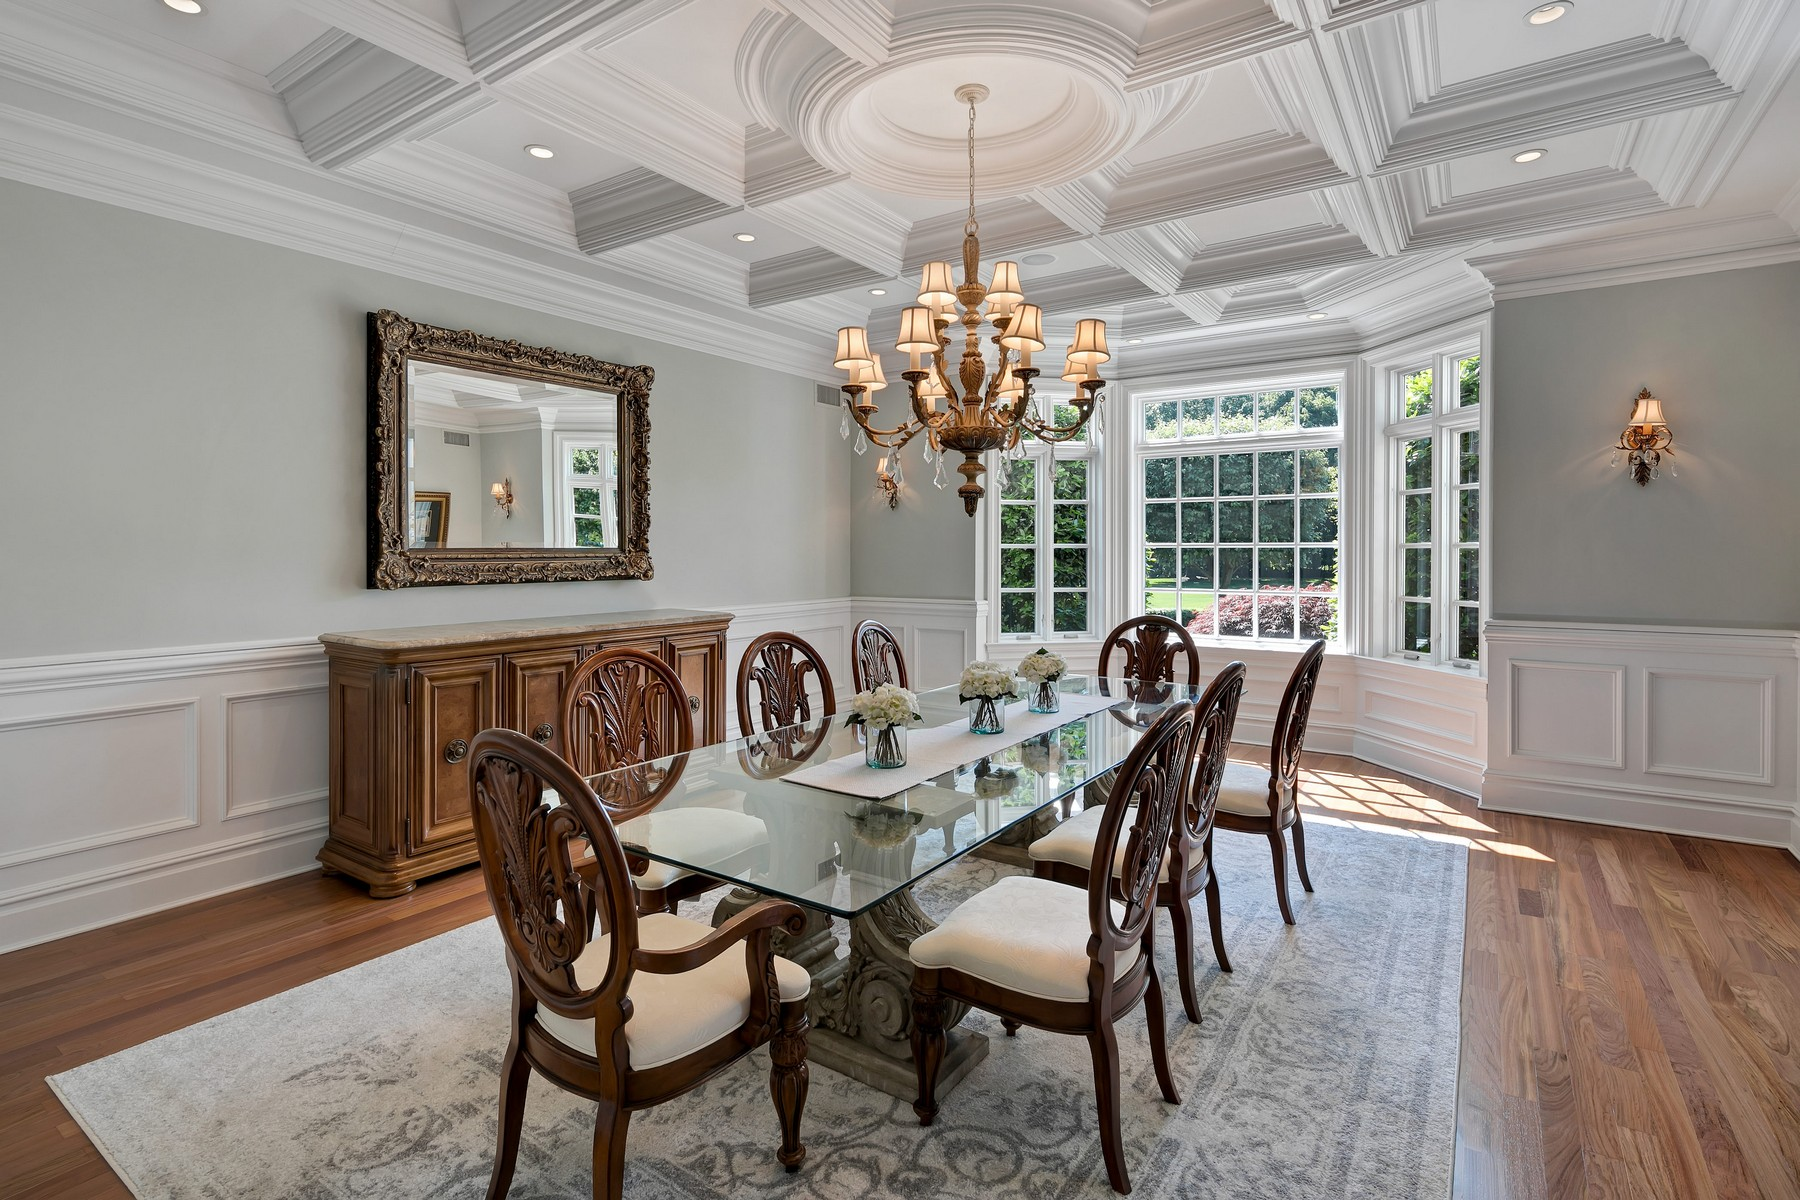 Additional photo for property listing at Whipporwill Valley Estate 15 Whipporwill Valley Rd., 米德尔敦, 新泽西州 07716 美国